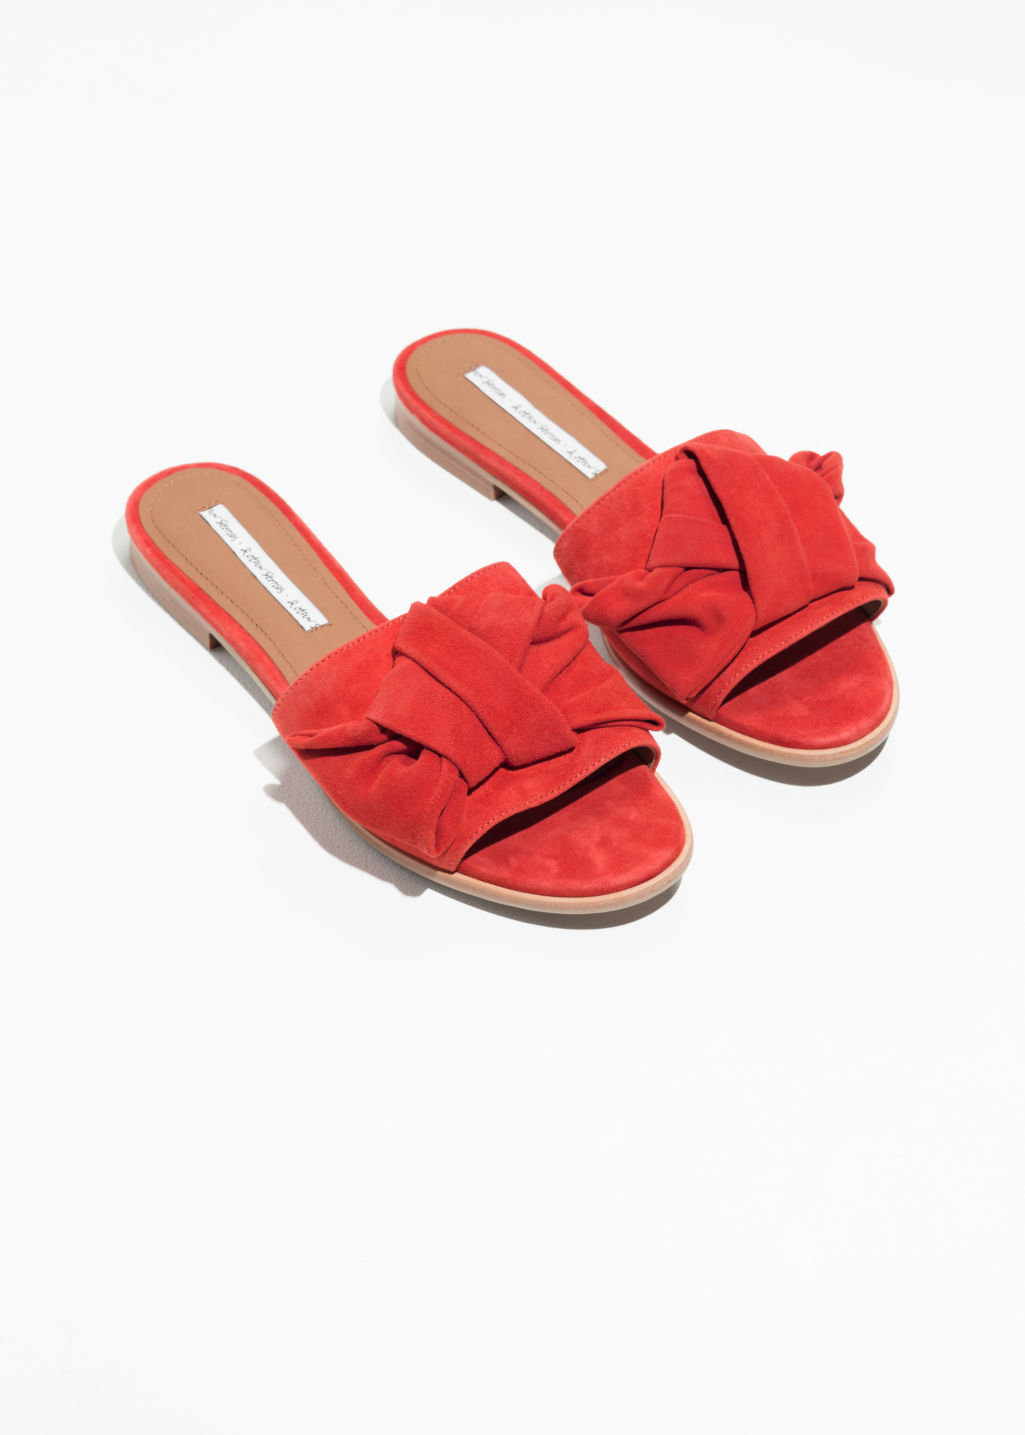 & OTHER STORIES Knotted Suede Slip Ons pLT9rOM